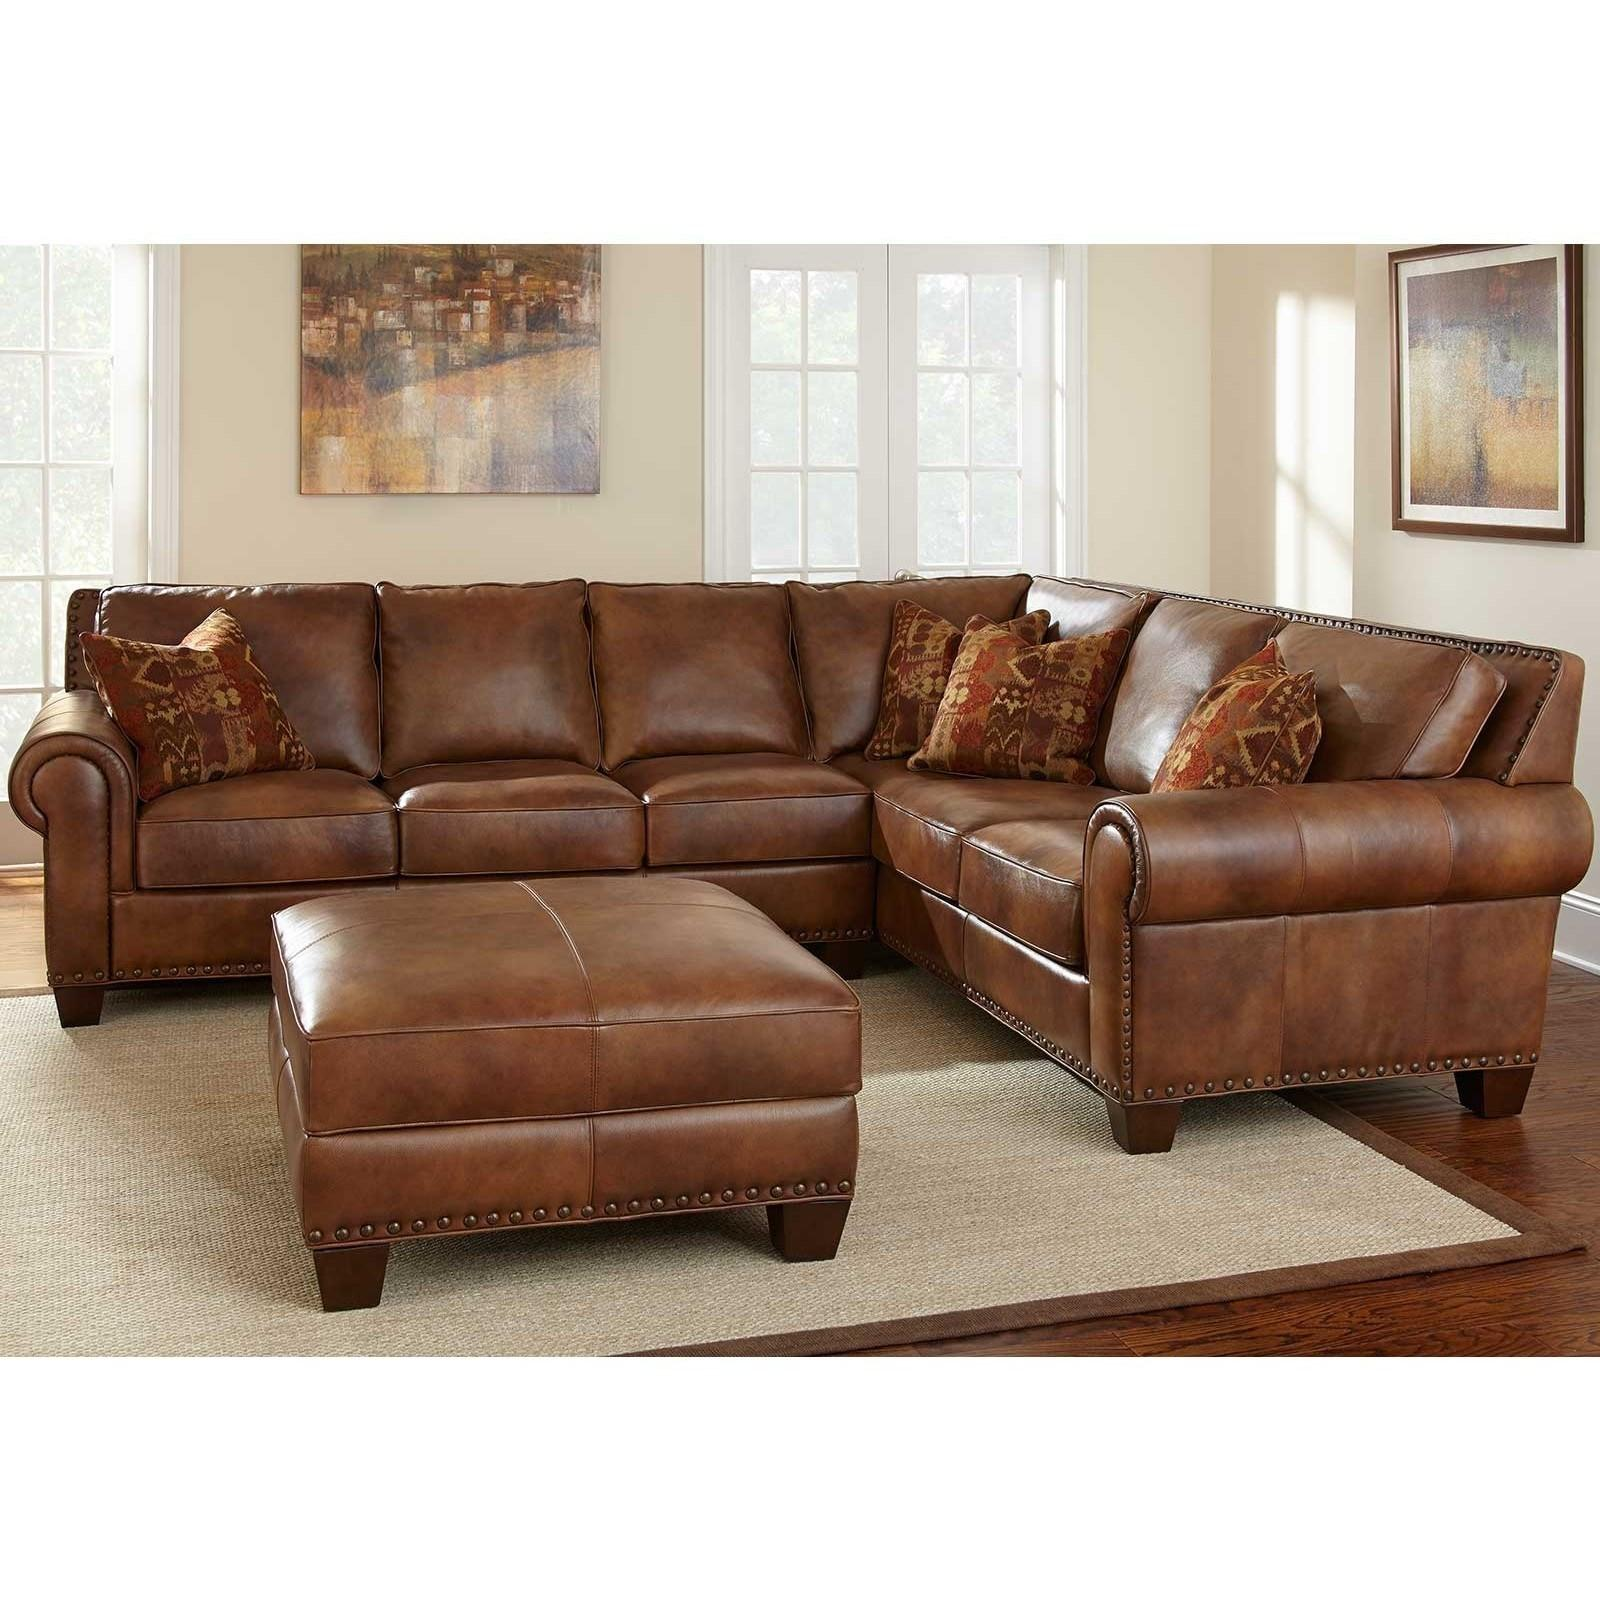 Cool Modern Sectional Sofas Sale Your Circular